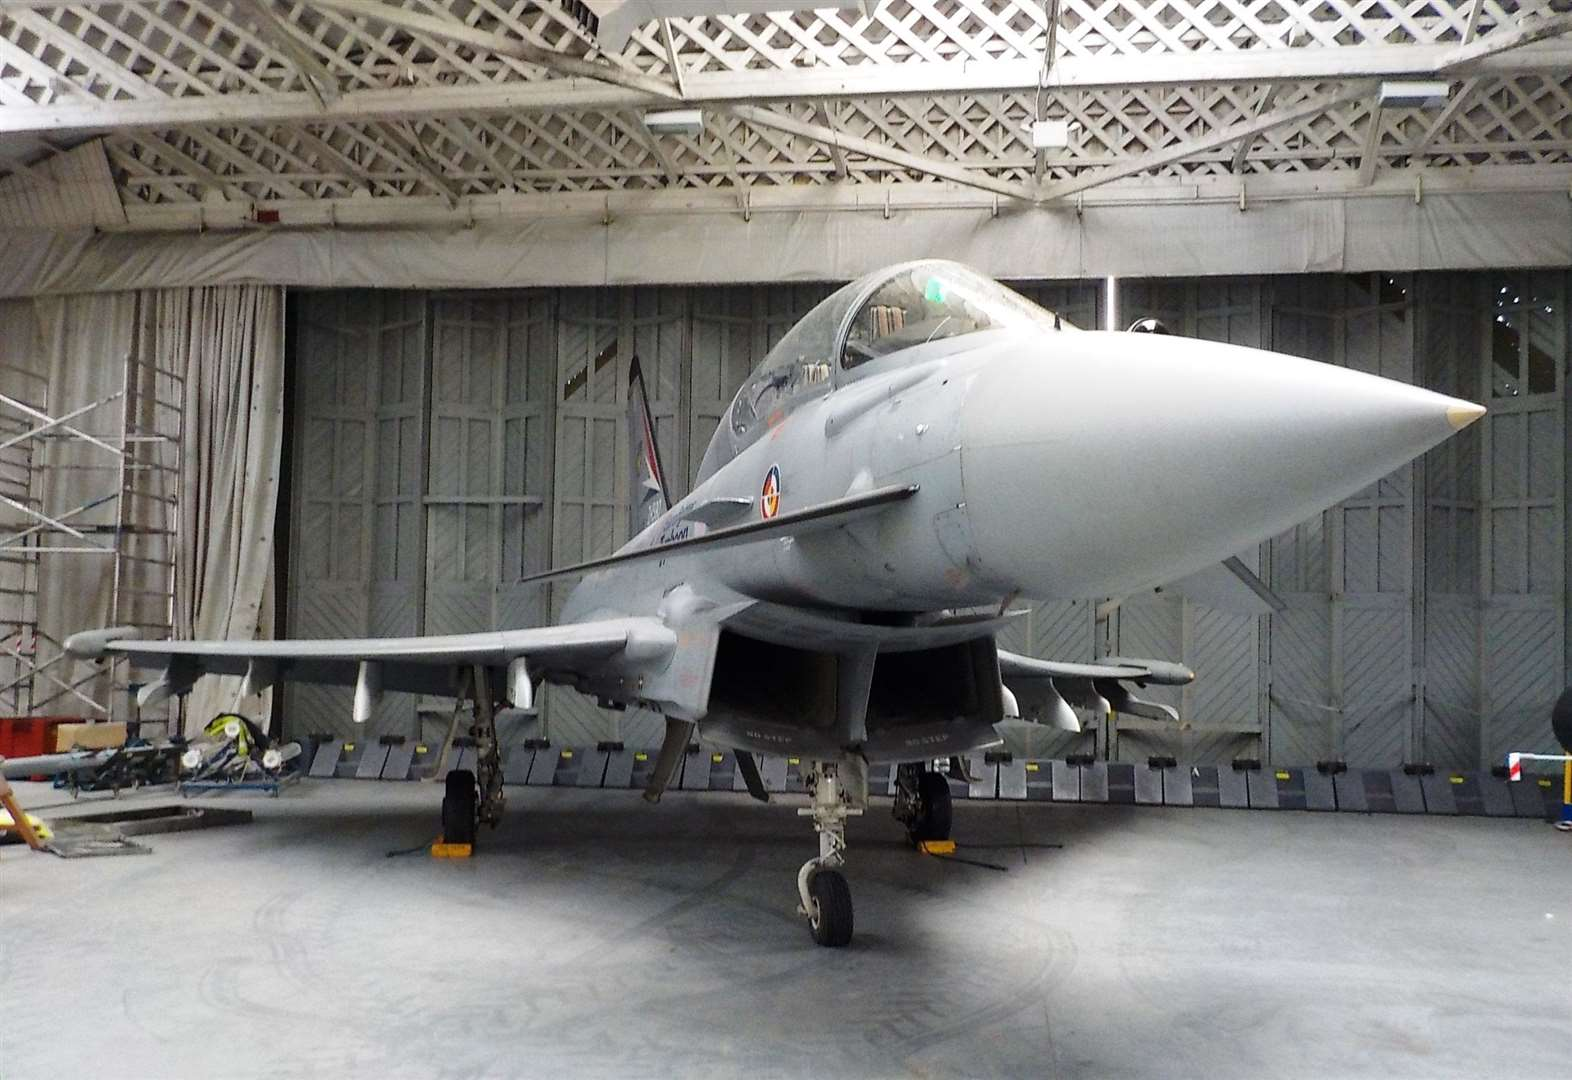 Eurofighter set to land at museum